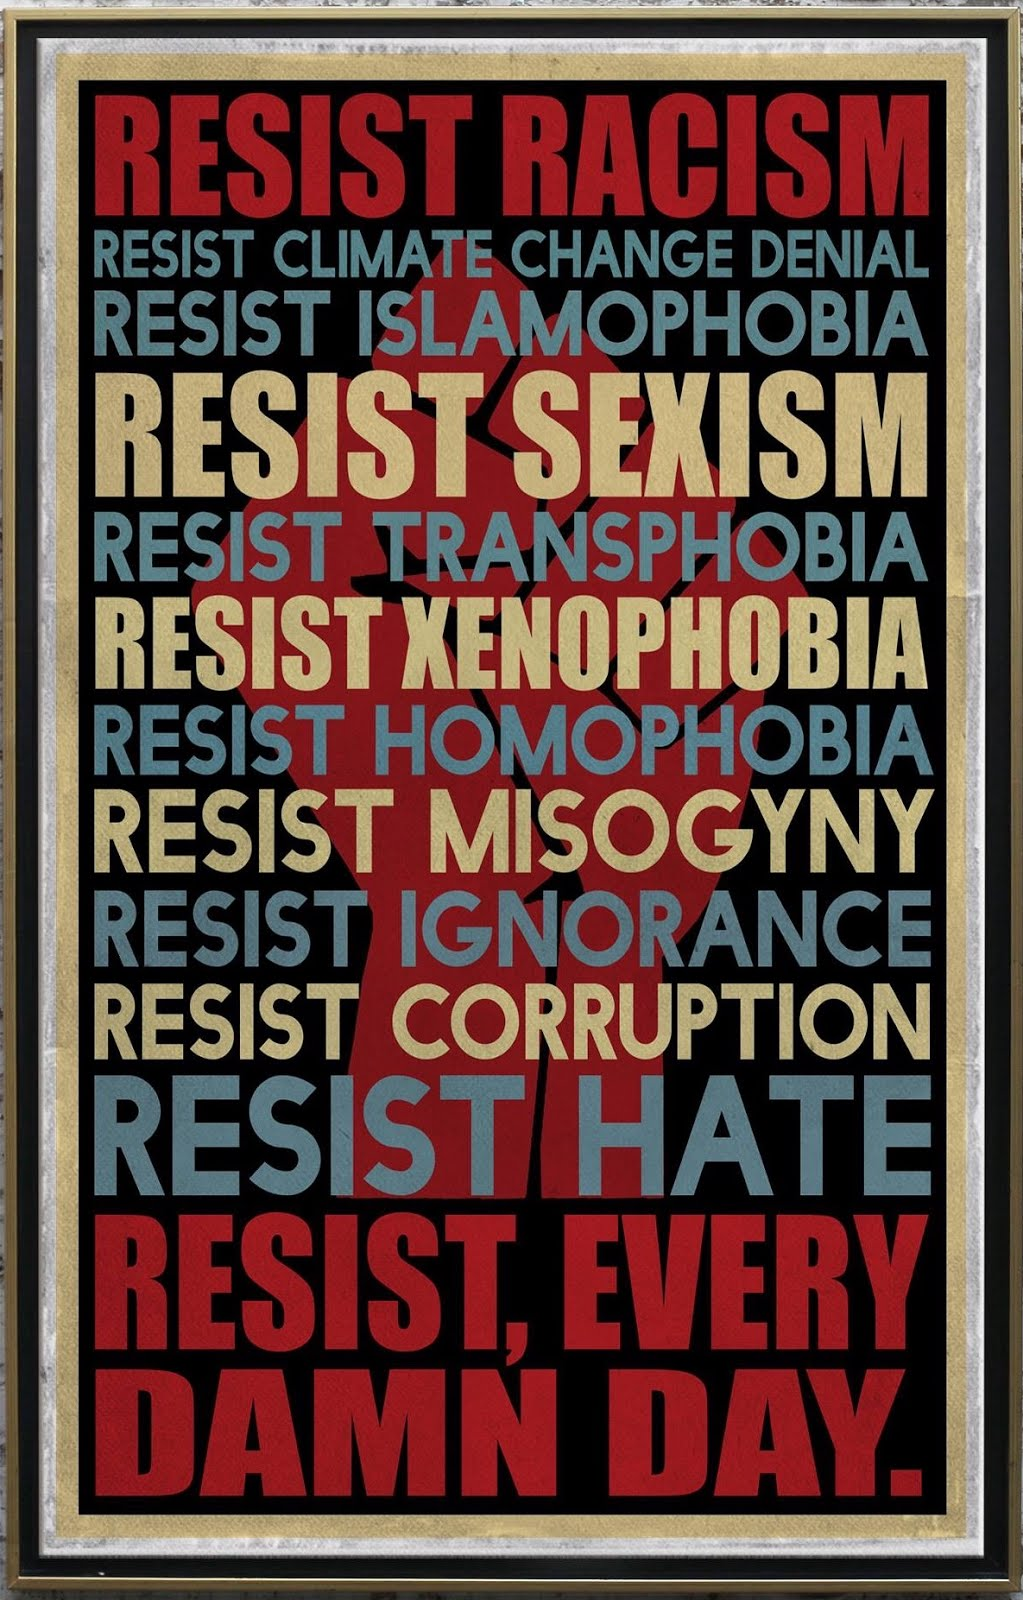 Be Active and Resist